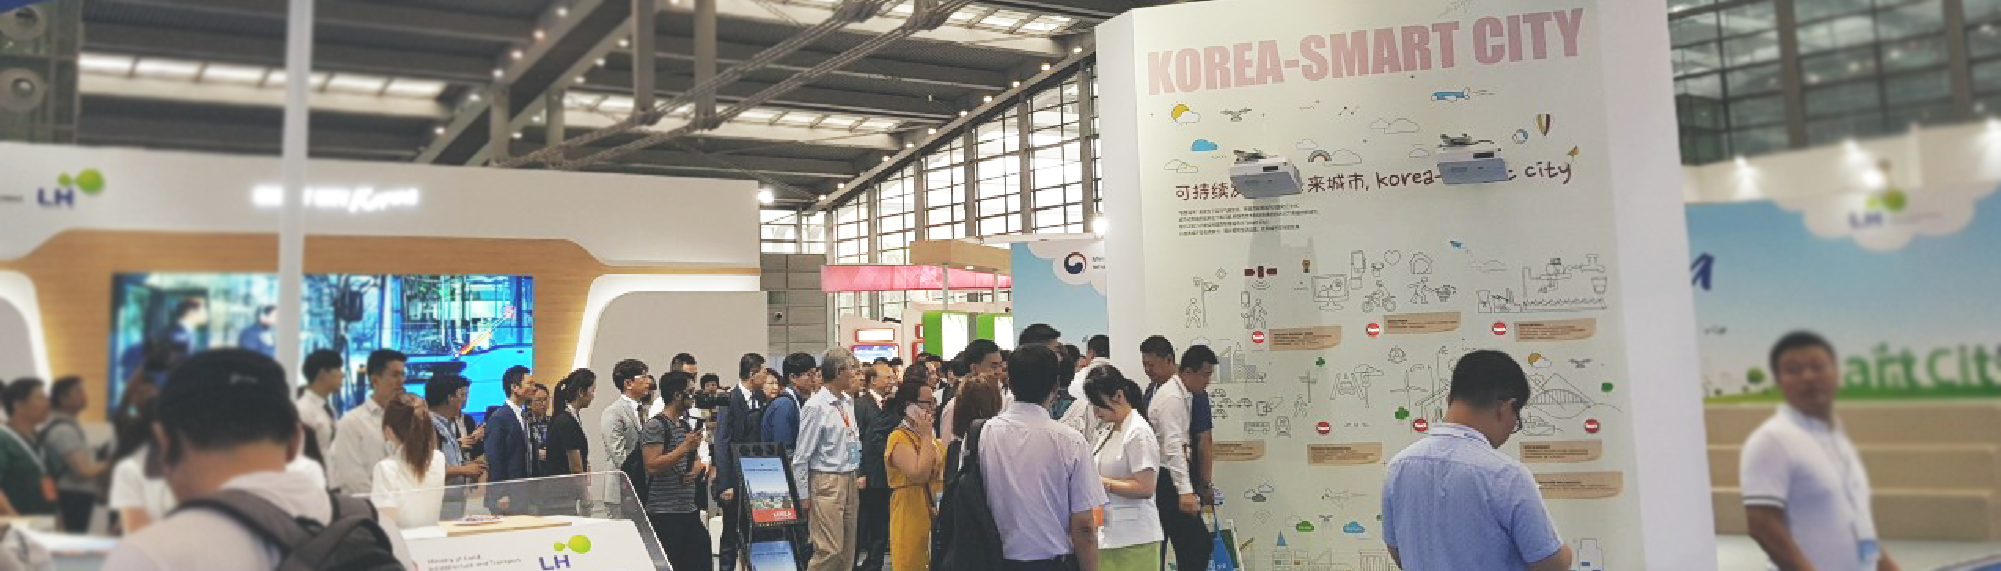 The 4th China Smart City International Expo 2018 (LH관)